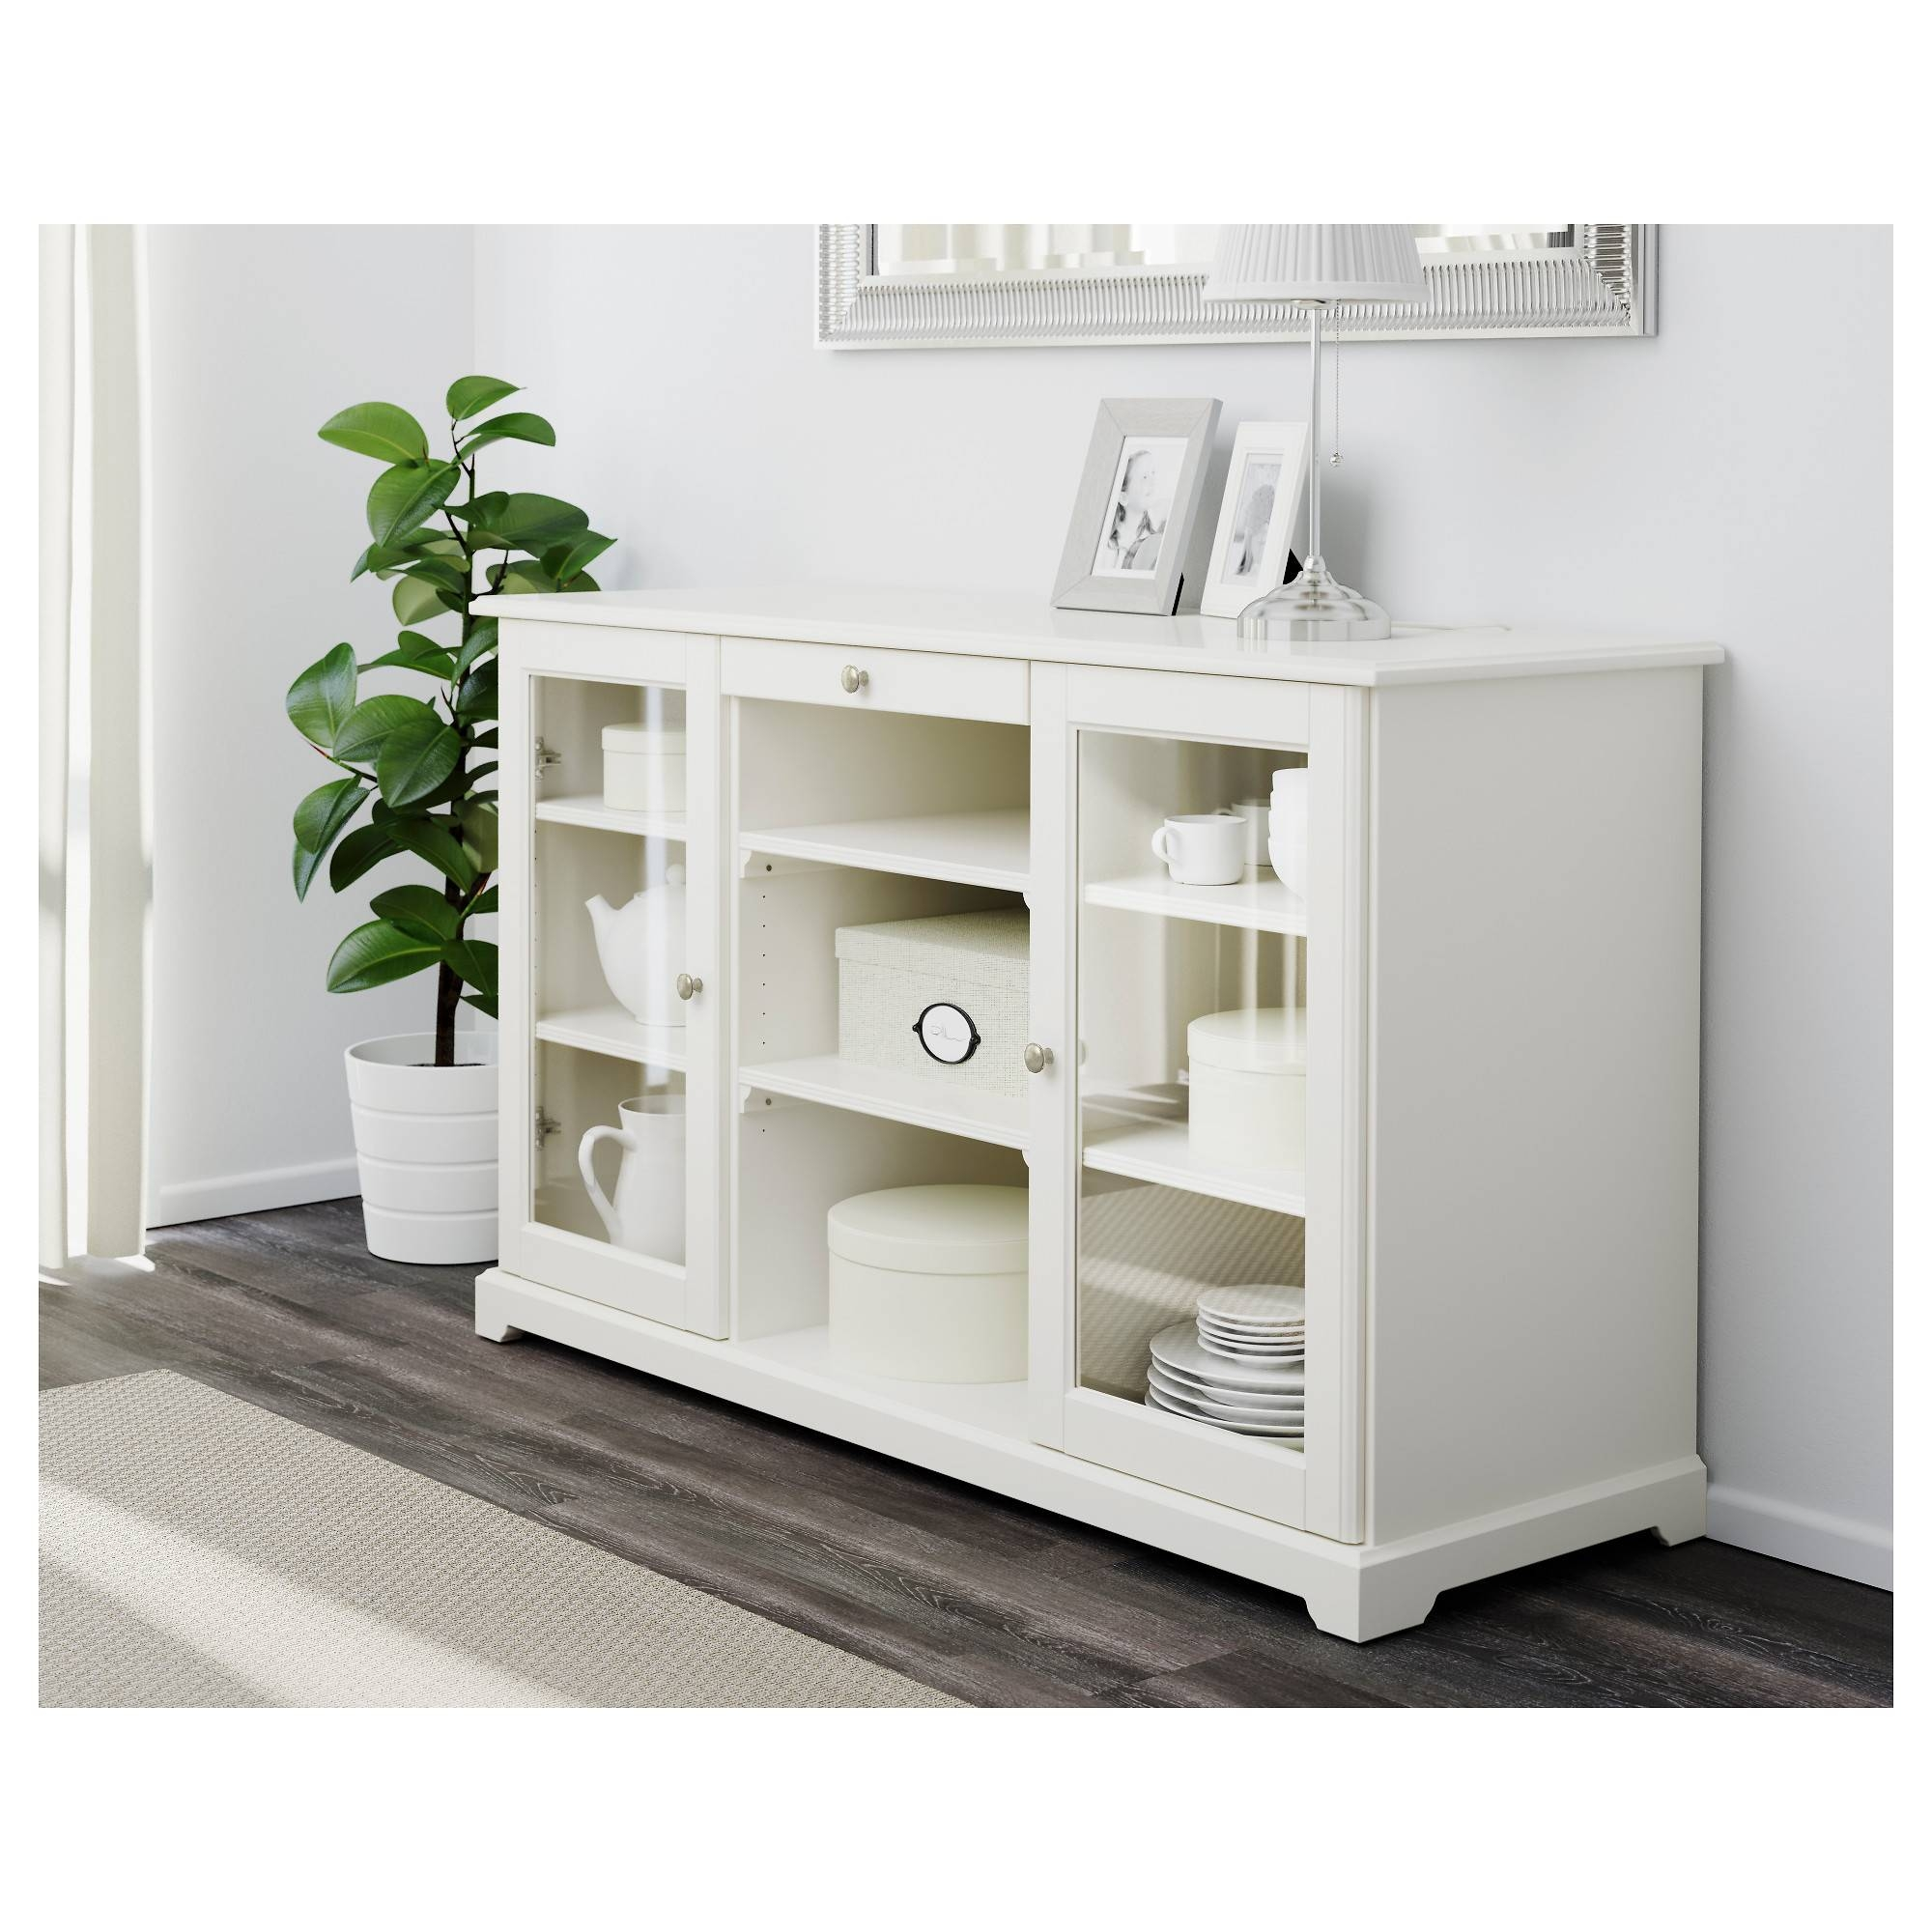 Sideboards. Astounding Small Sideboard: Small-Sideboard-Modern with Contemporary White Sideboards (Image 22 of 30)